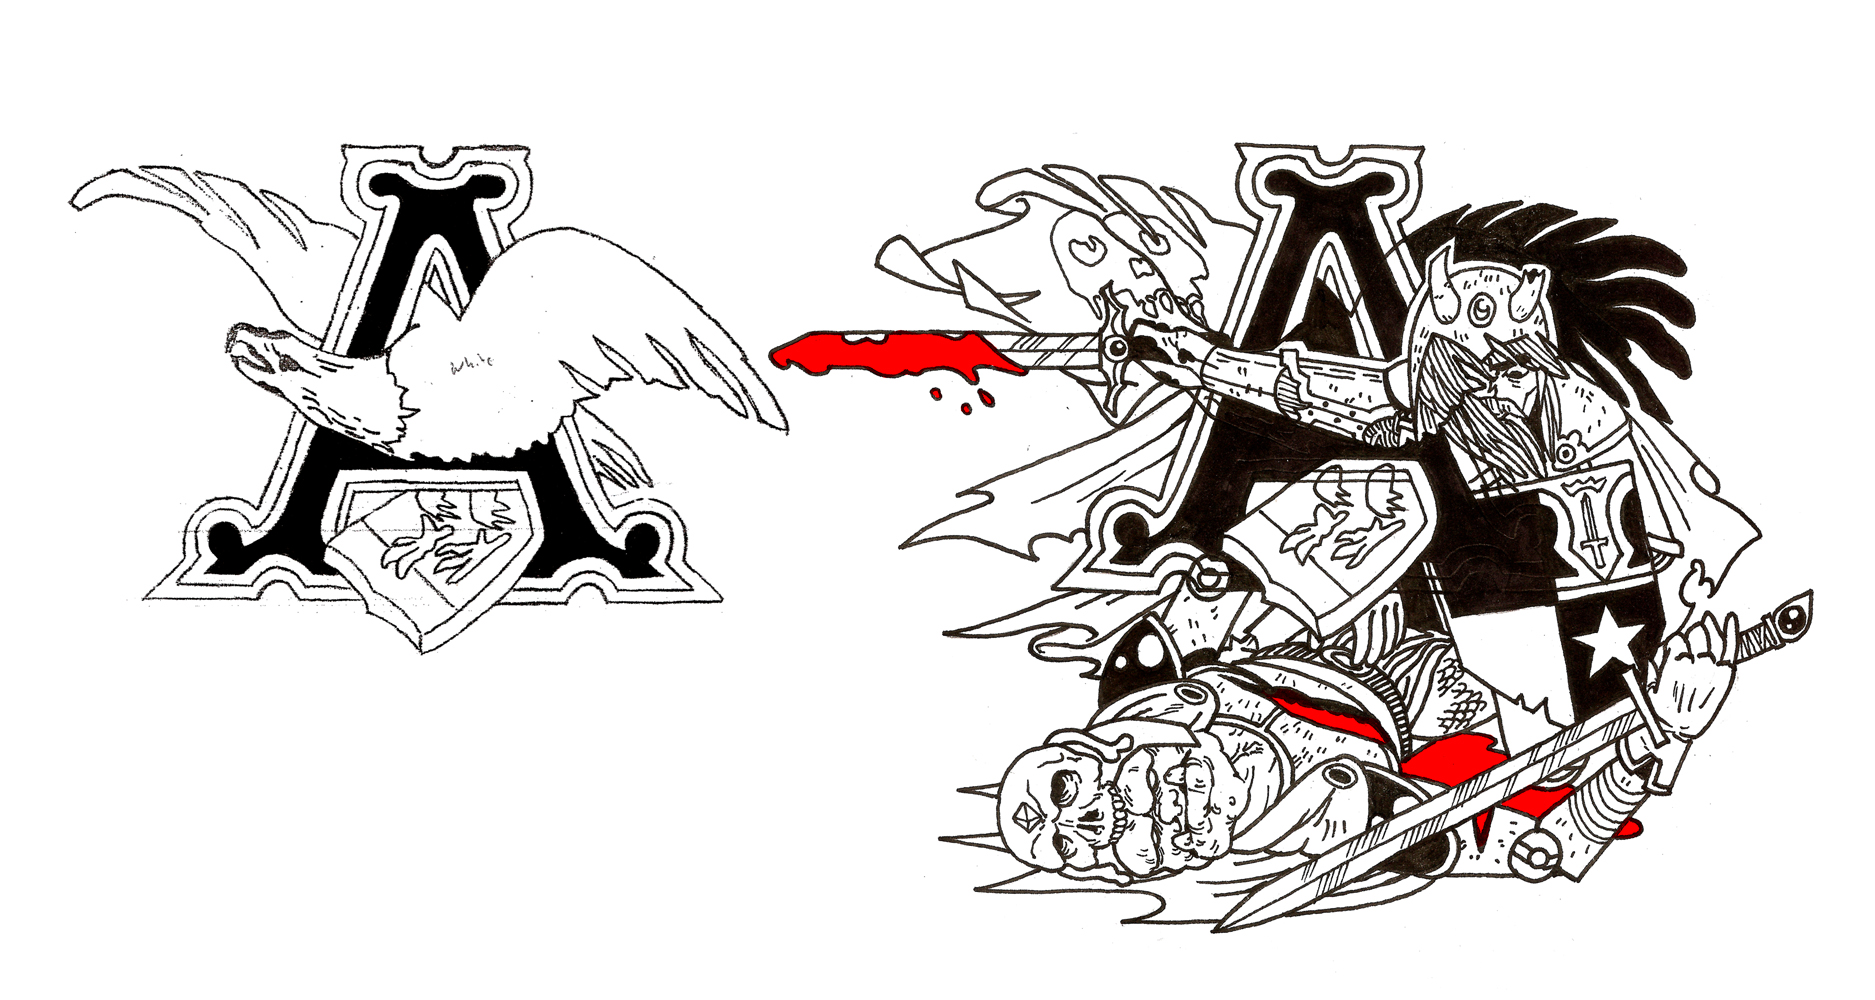 My coworker got the Anheuser-Busch eagle logo tattooed on his shoulder when he was in college. He now regrets it and asked me to design a cover up for it with a bad ass warrior motif, this is what I could come up with.